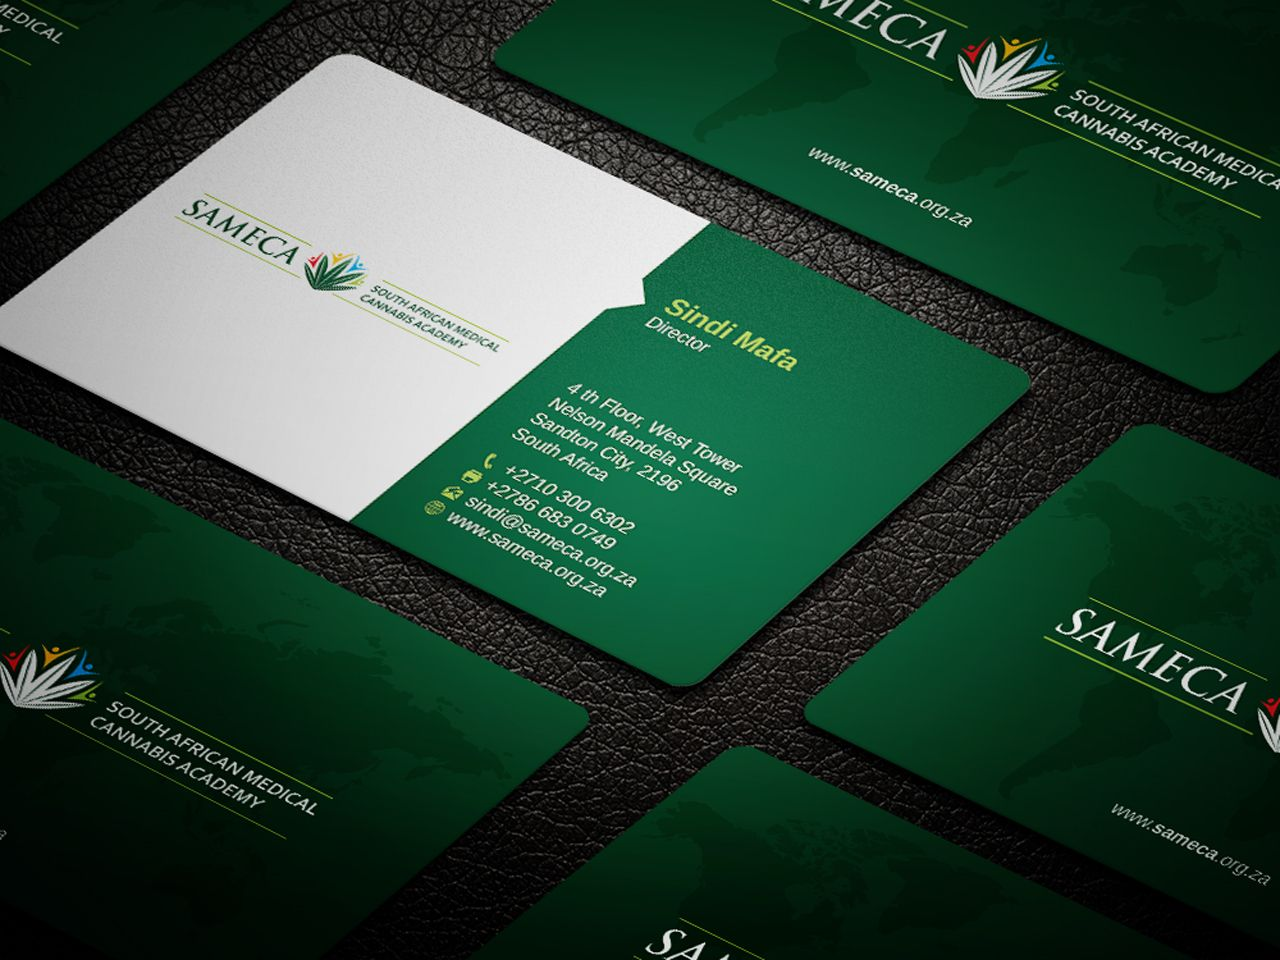 Designs business cards for non profit organisation business designs business cards for non profit organisation business card contest business card pinterest business cards and logos colourmoves